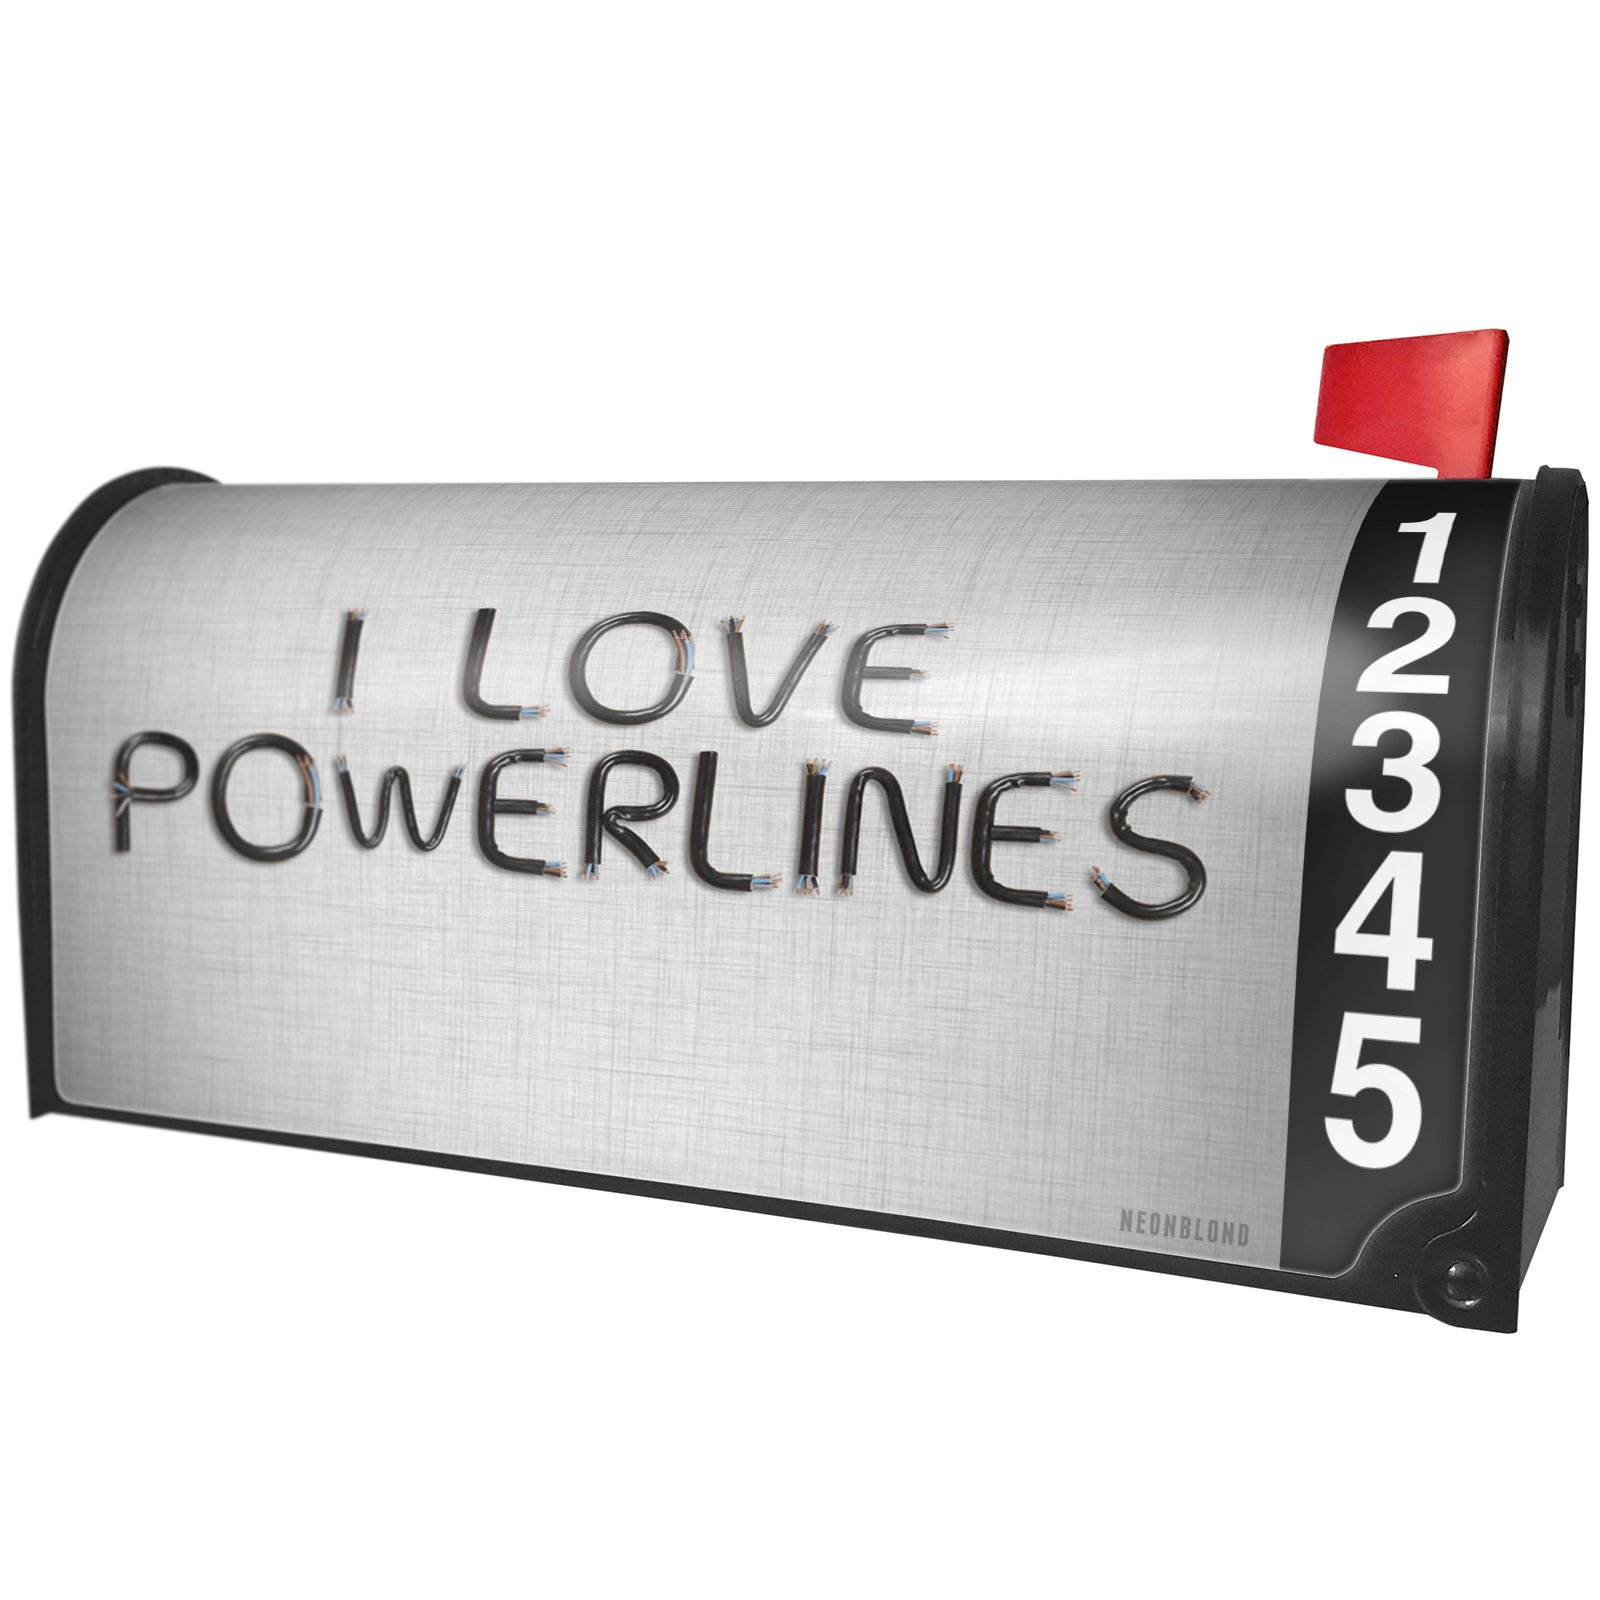 NEONBLOND I Love Powerlines Electronics Wires and Cables Magnetic Mailbox Cover Custom Numbers